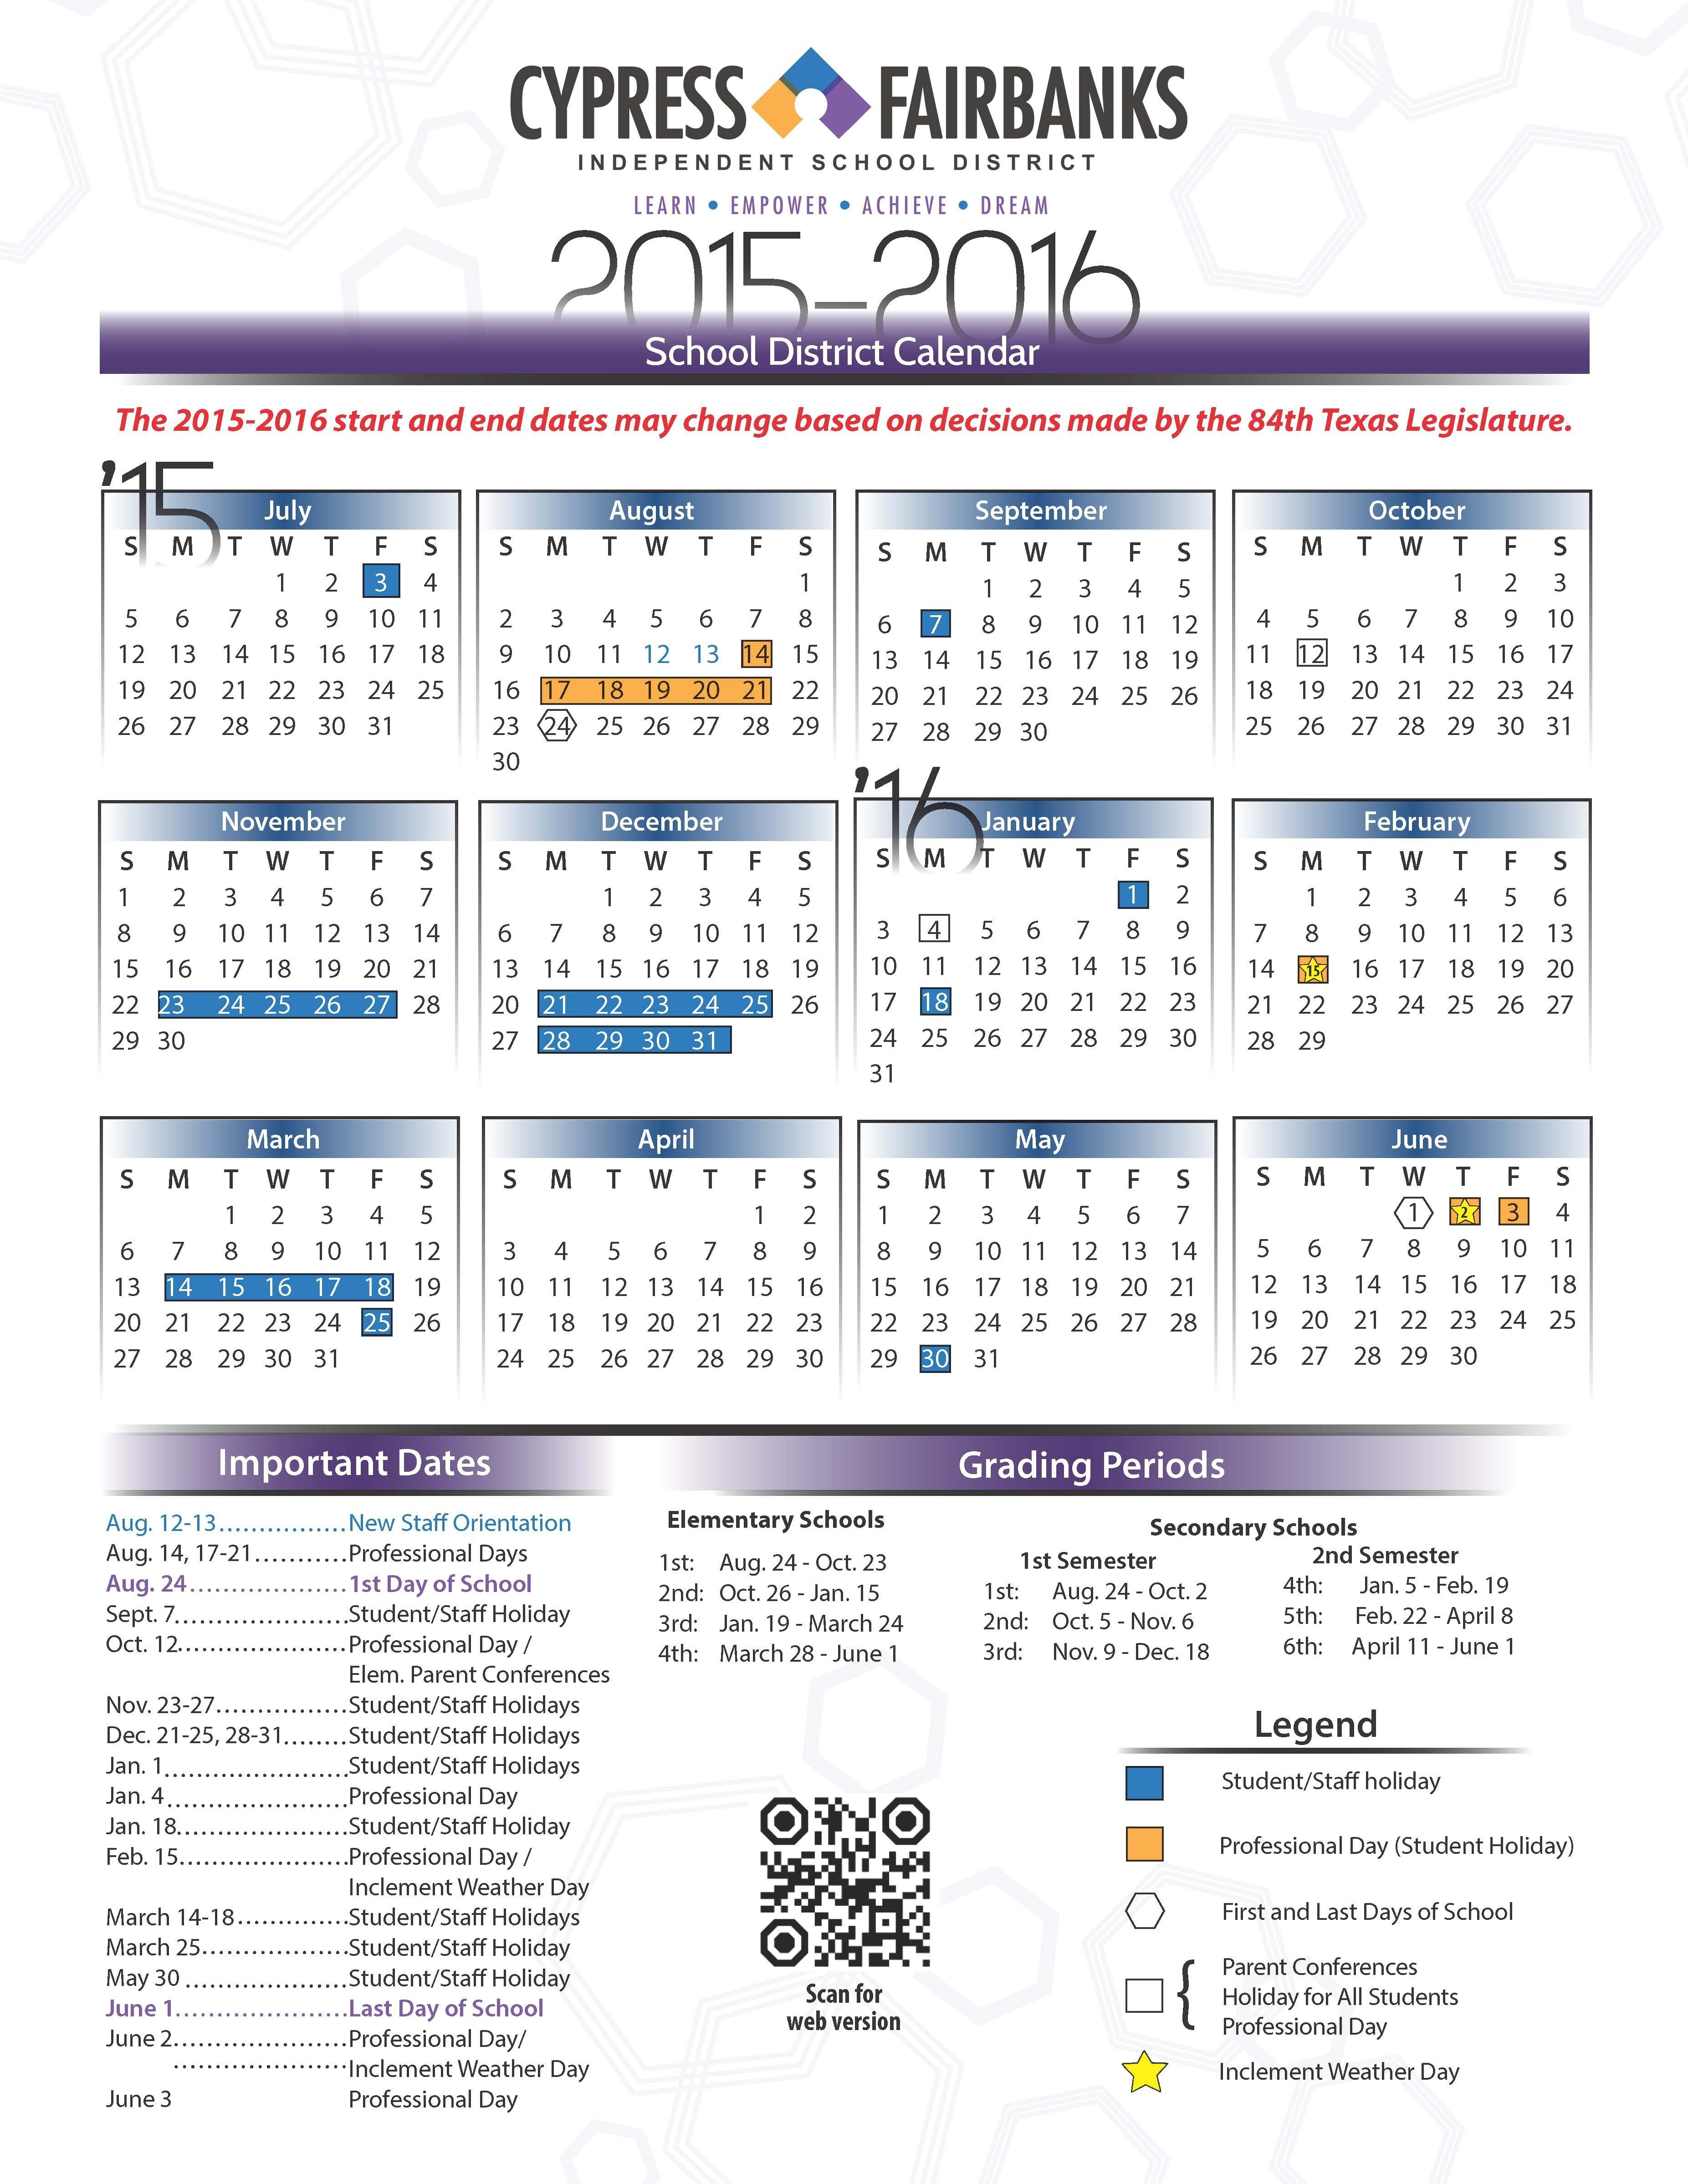 Calendario Escolar Hisd 2019 Más Reciente Cy Fair isd Calendar